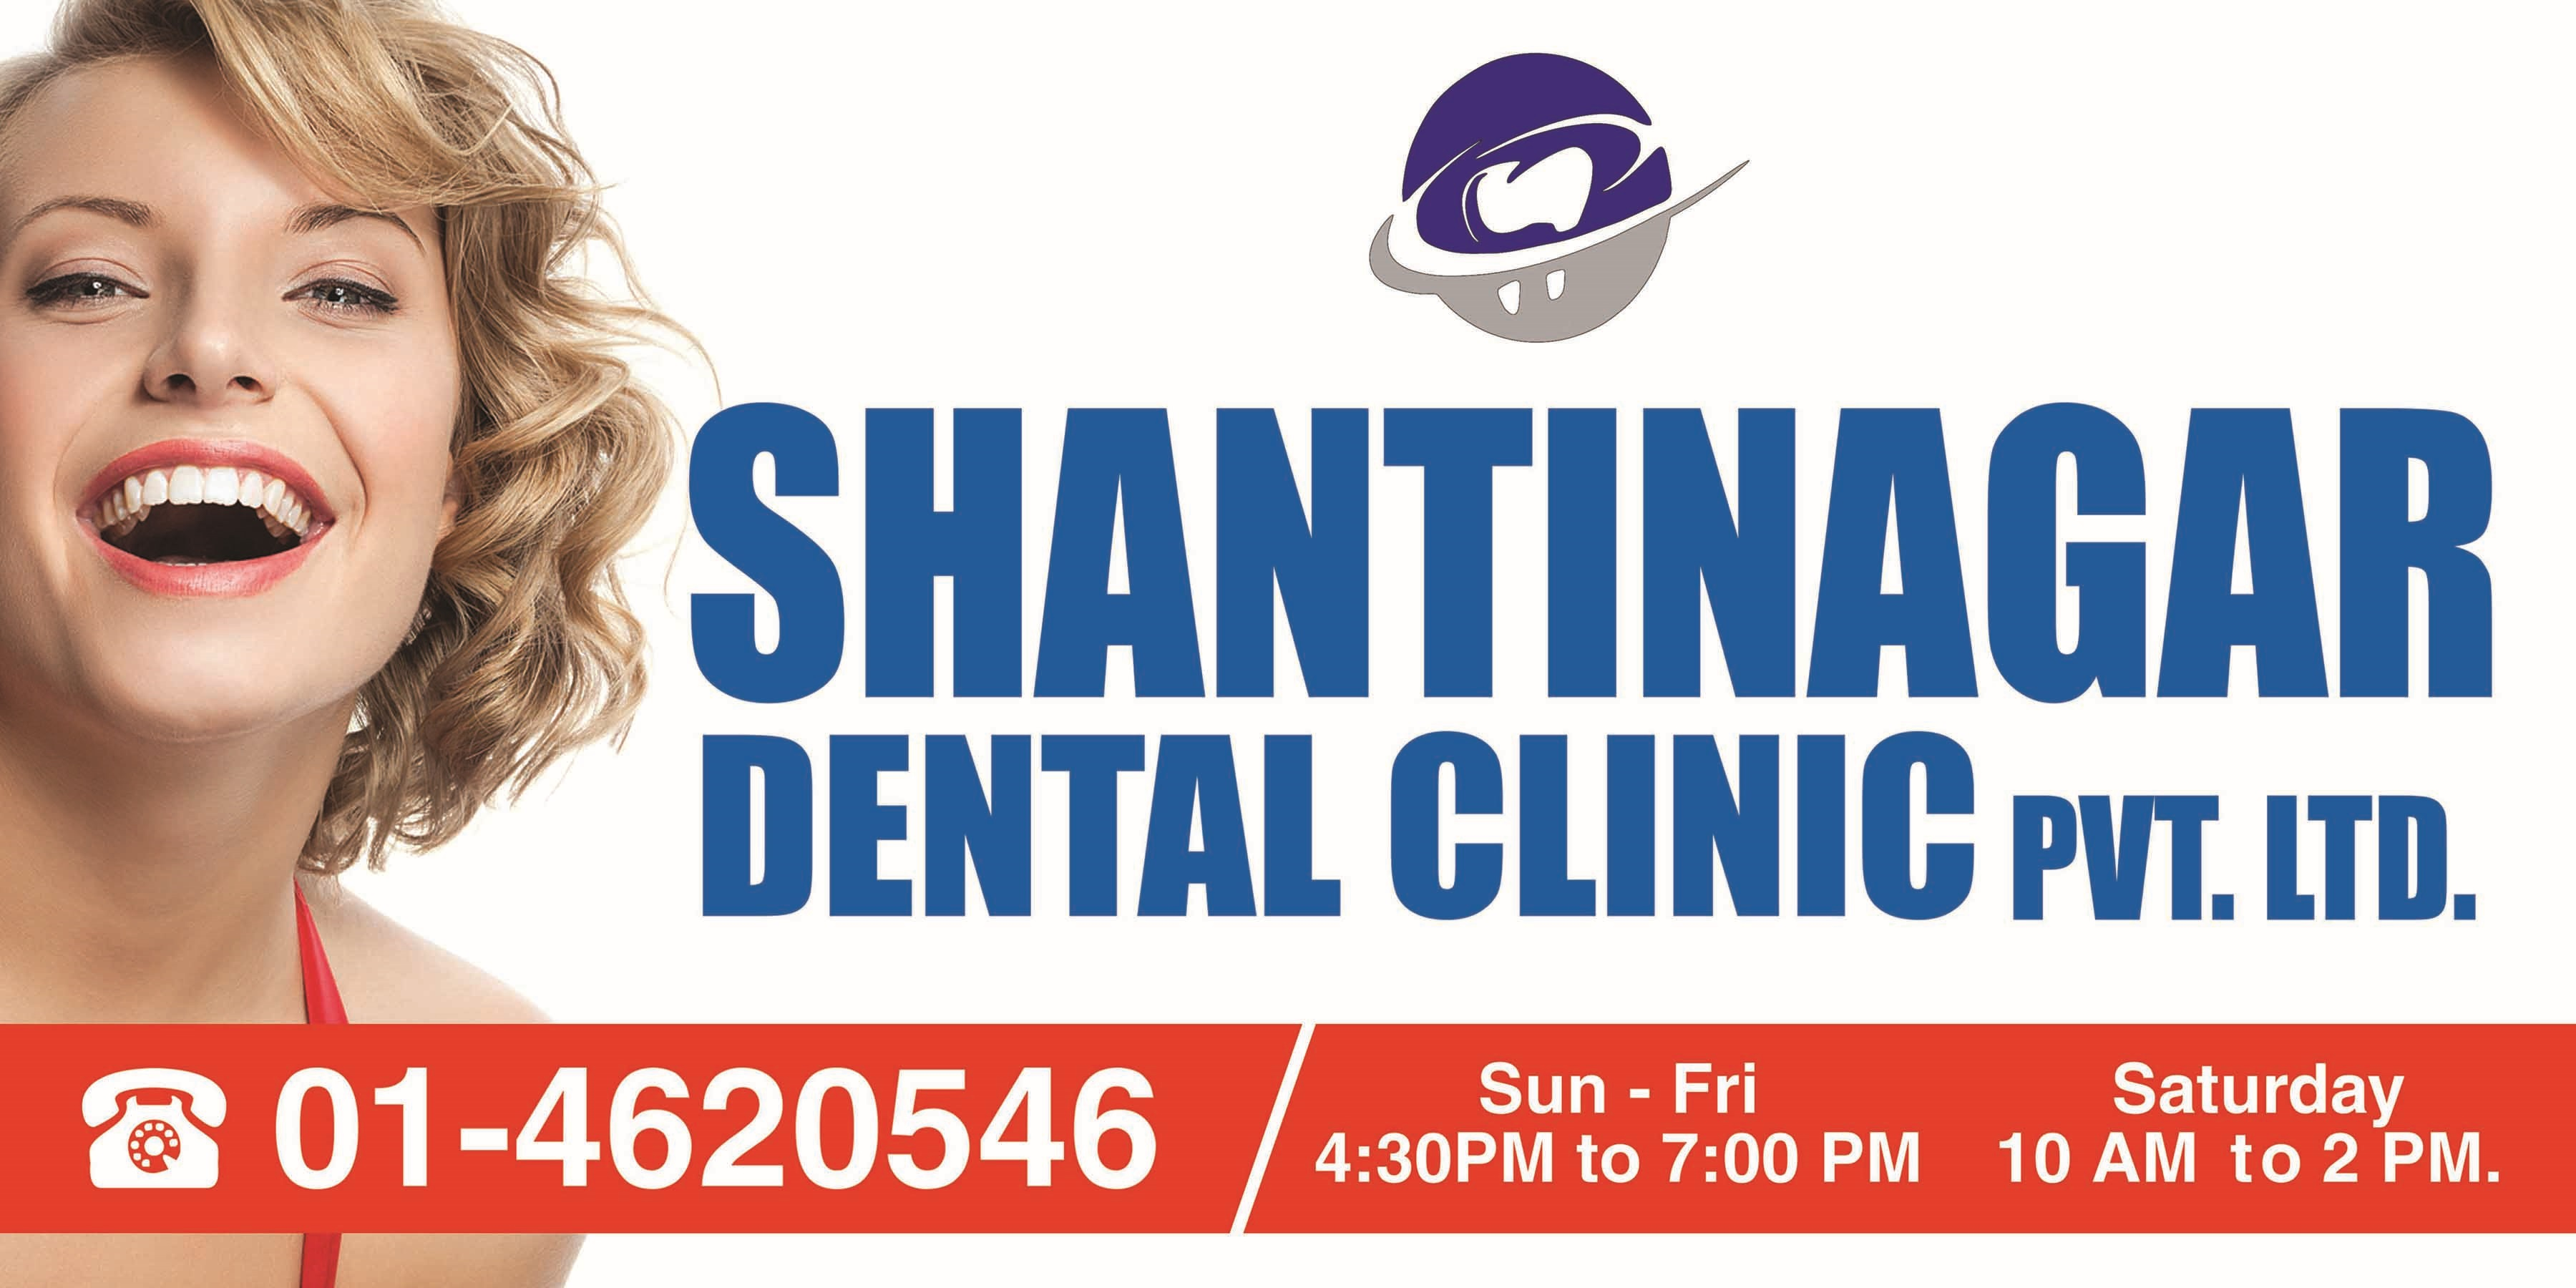 Shantinagar Dental Clinic image